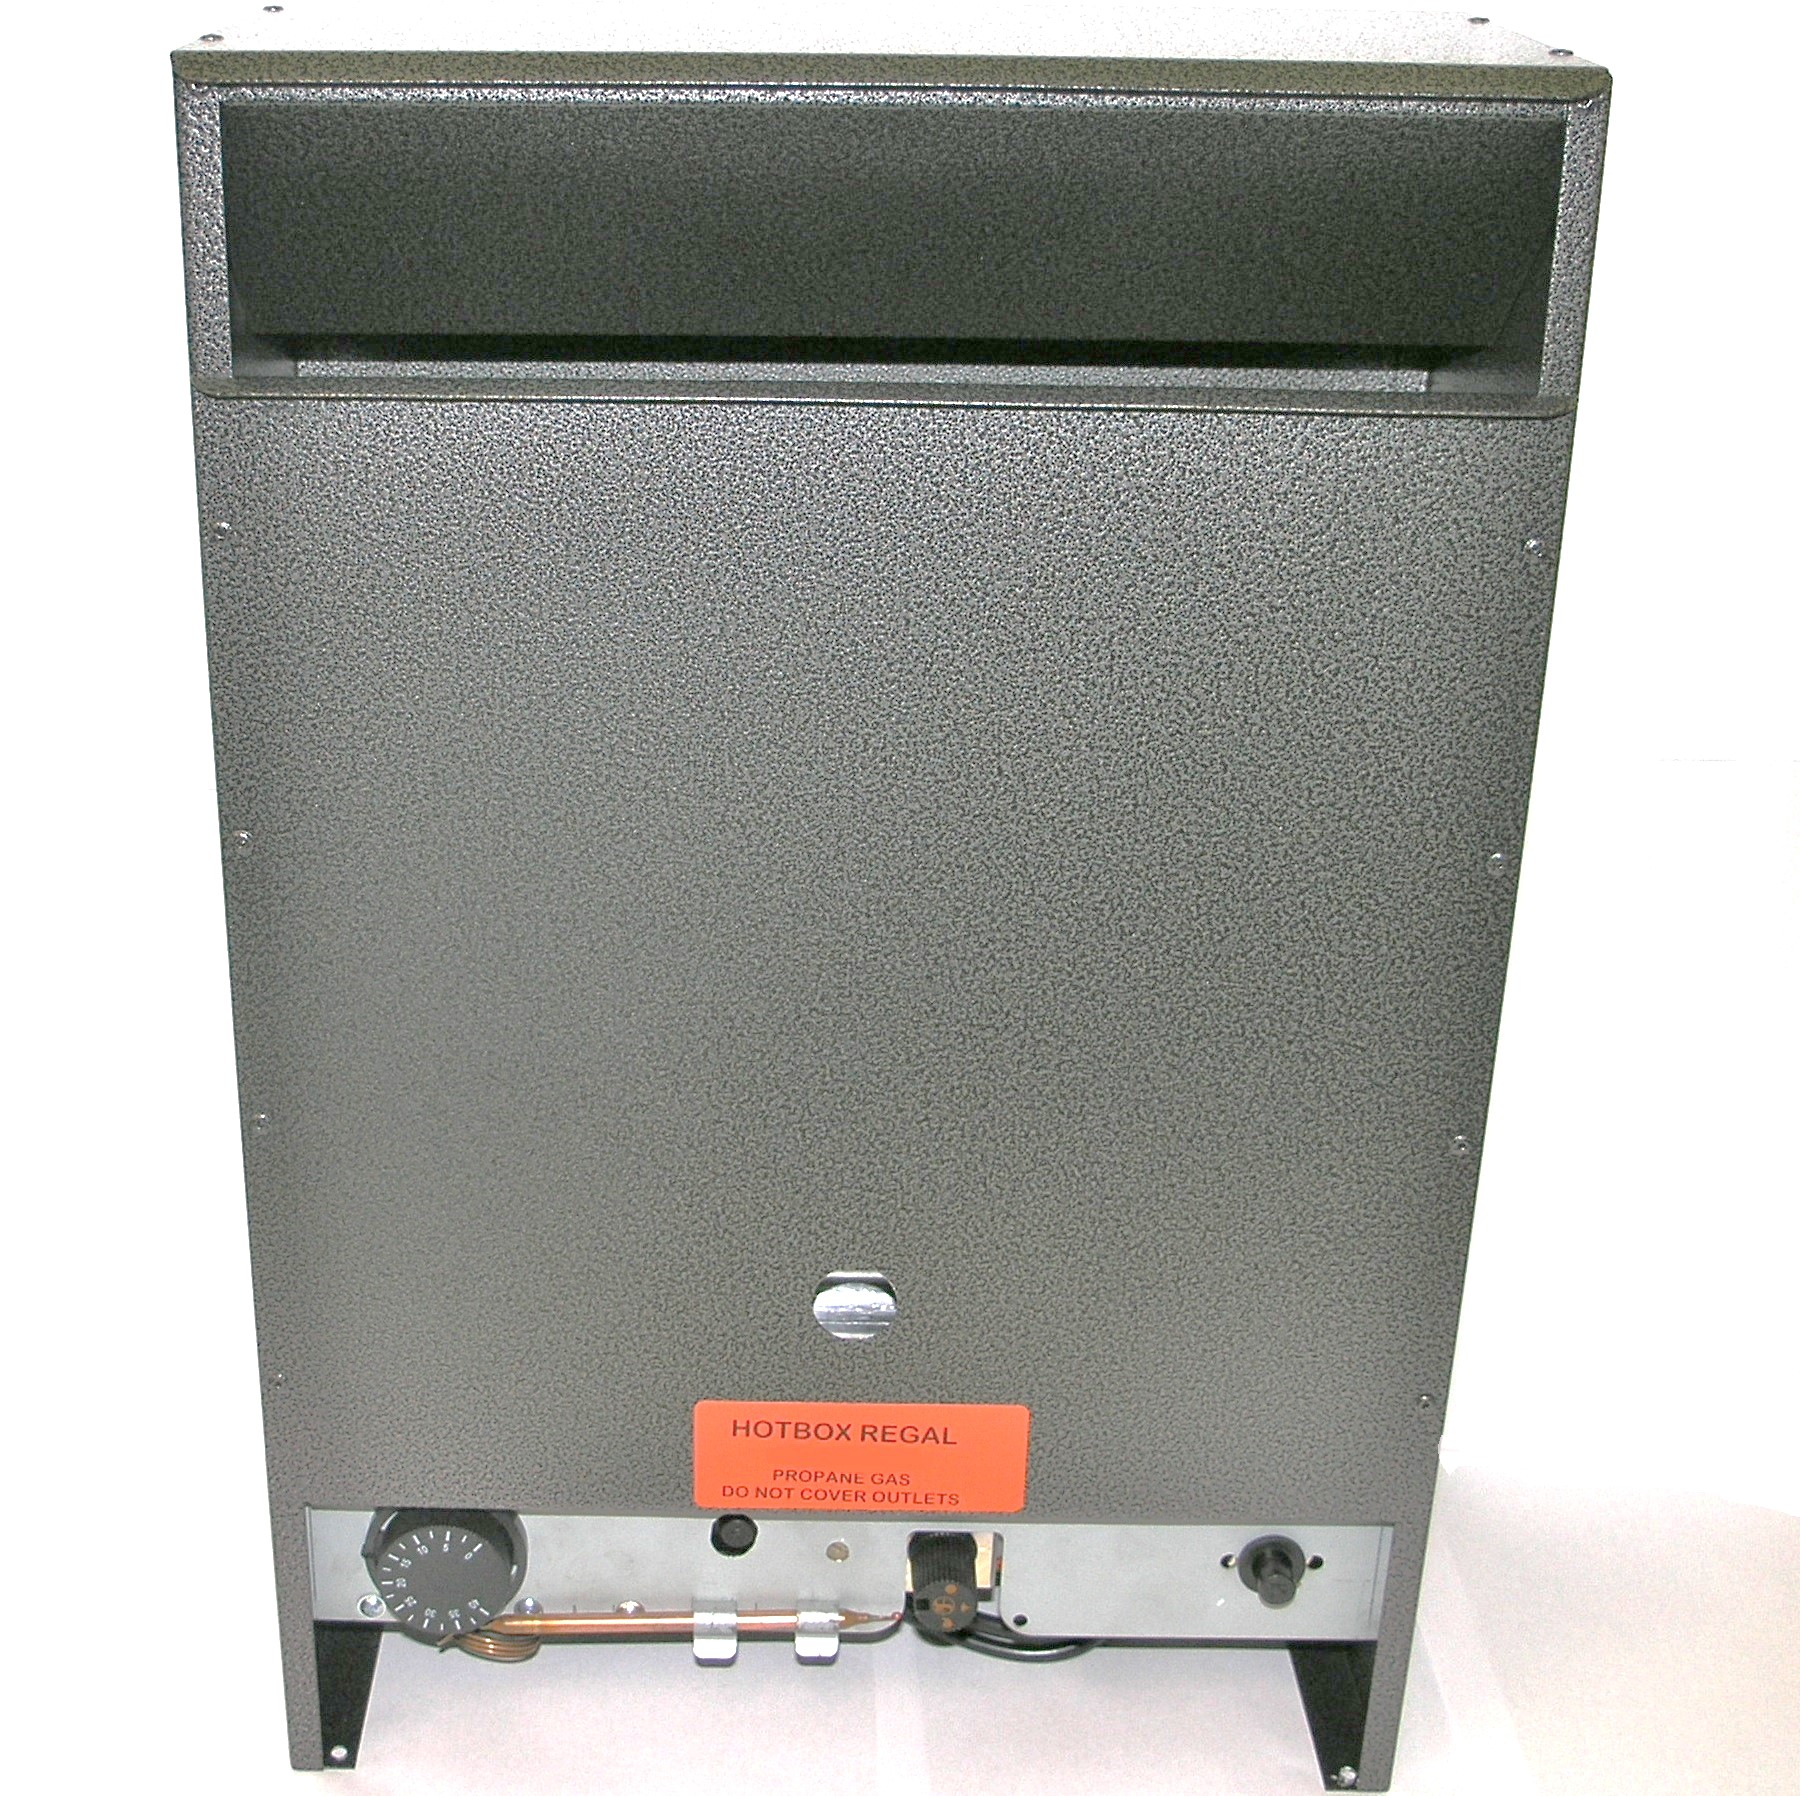 Image of Regal Gold 4kW Propane Greenhouse Heater - 8208399